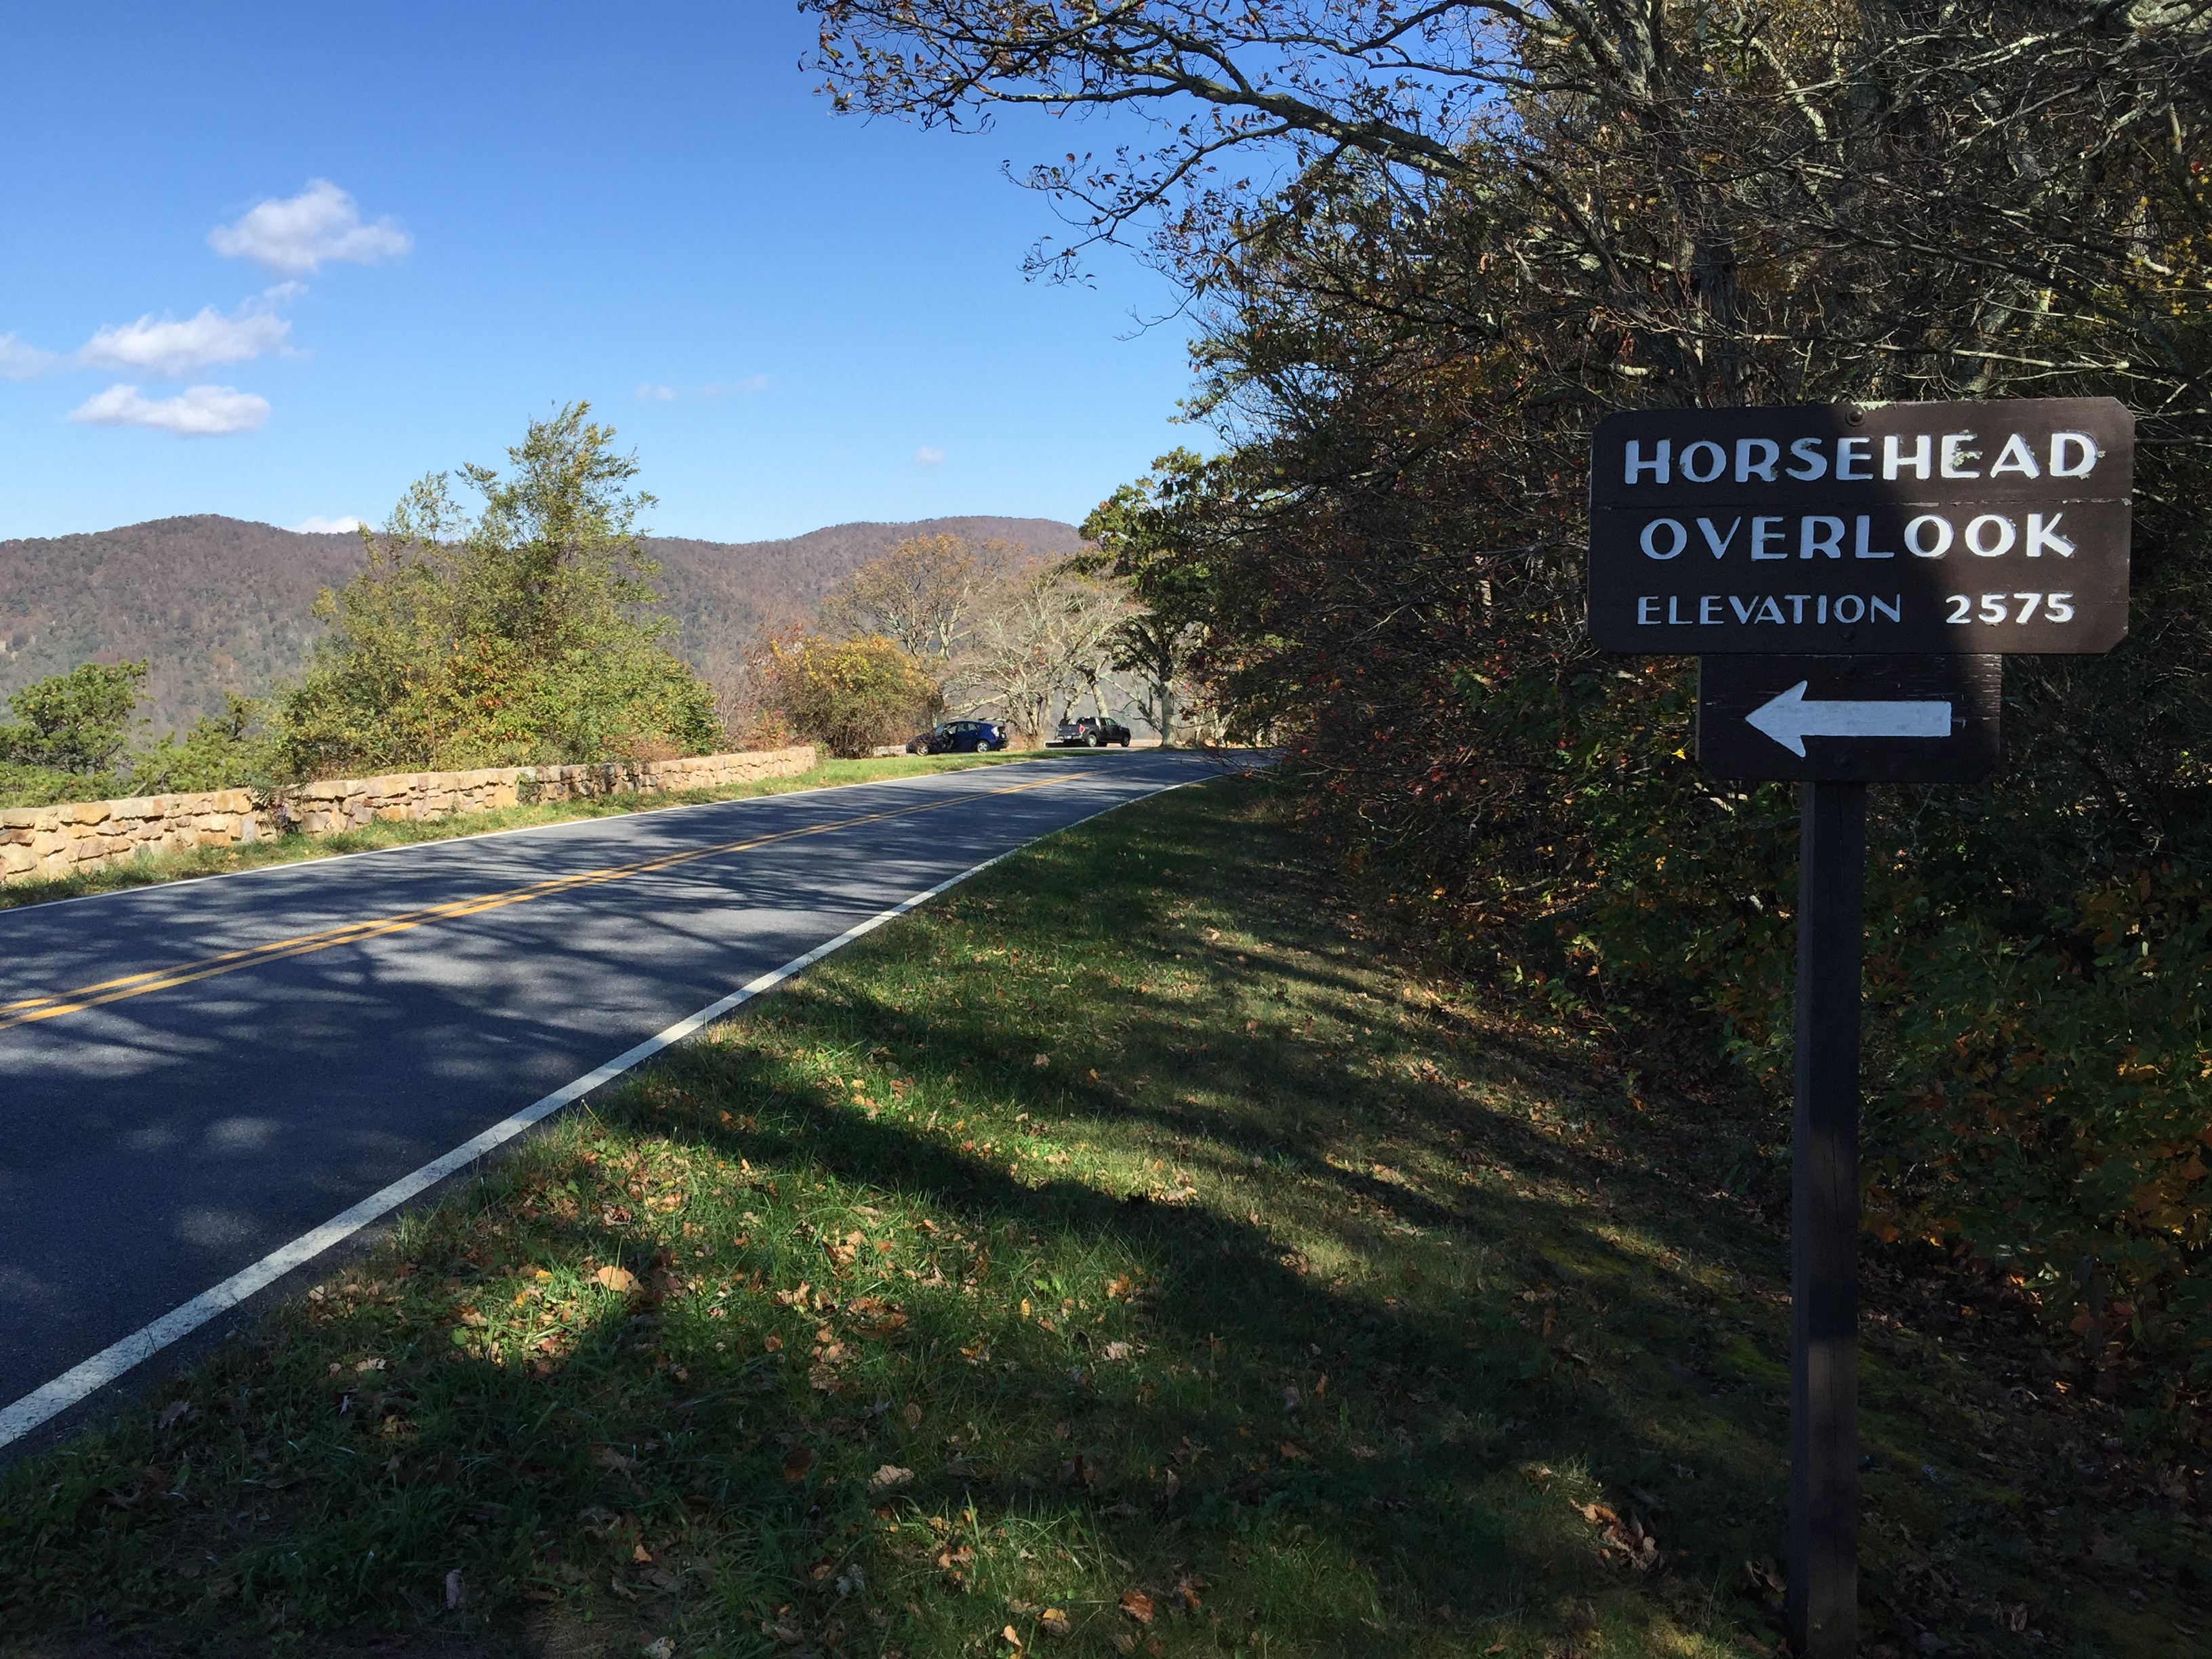 Sign And Drive 45 >> File 2016 10 24 11 45 52 Sign For The Horsehead Overlook